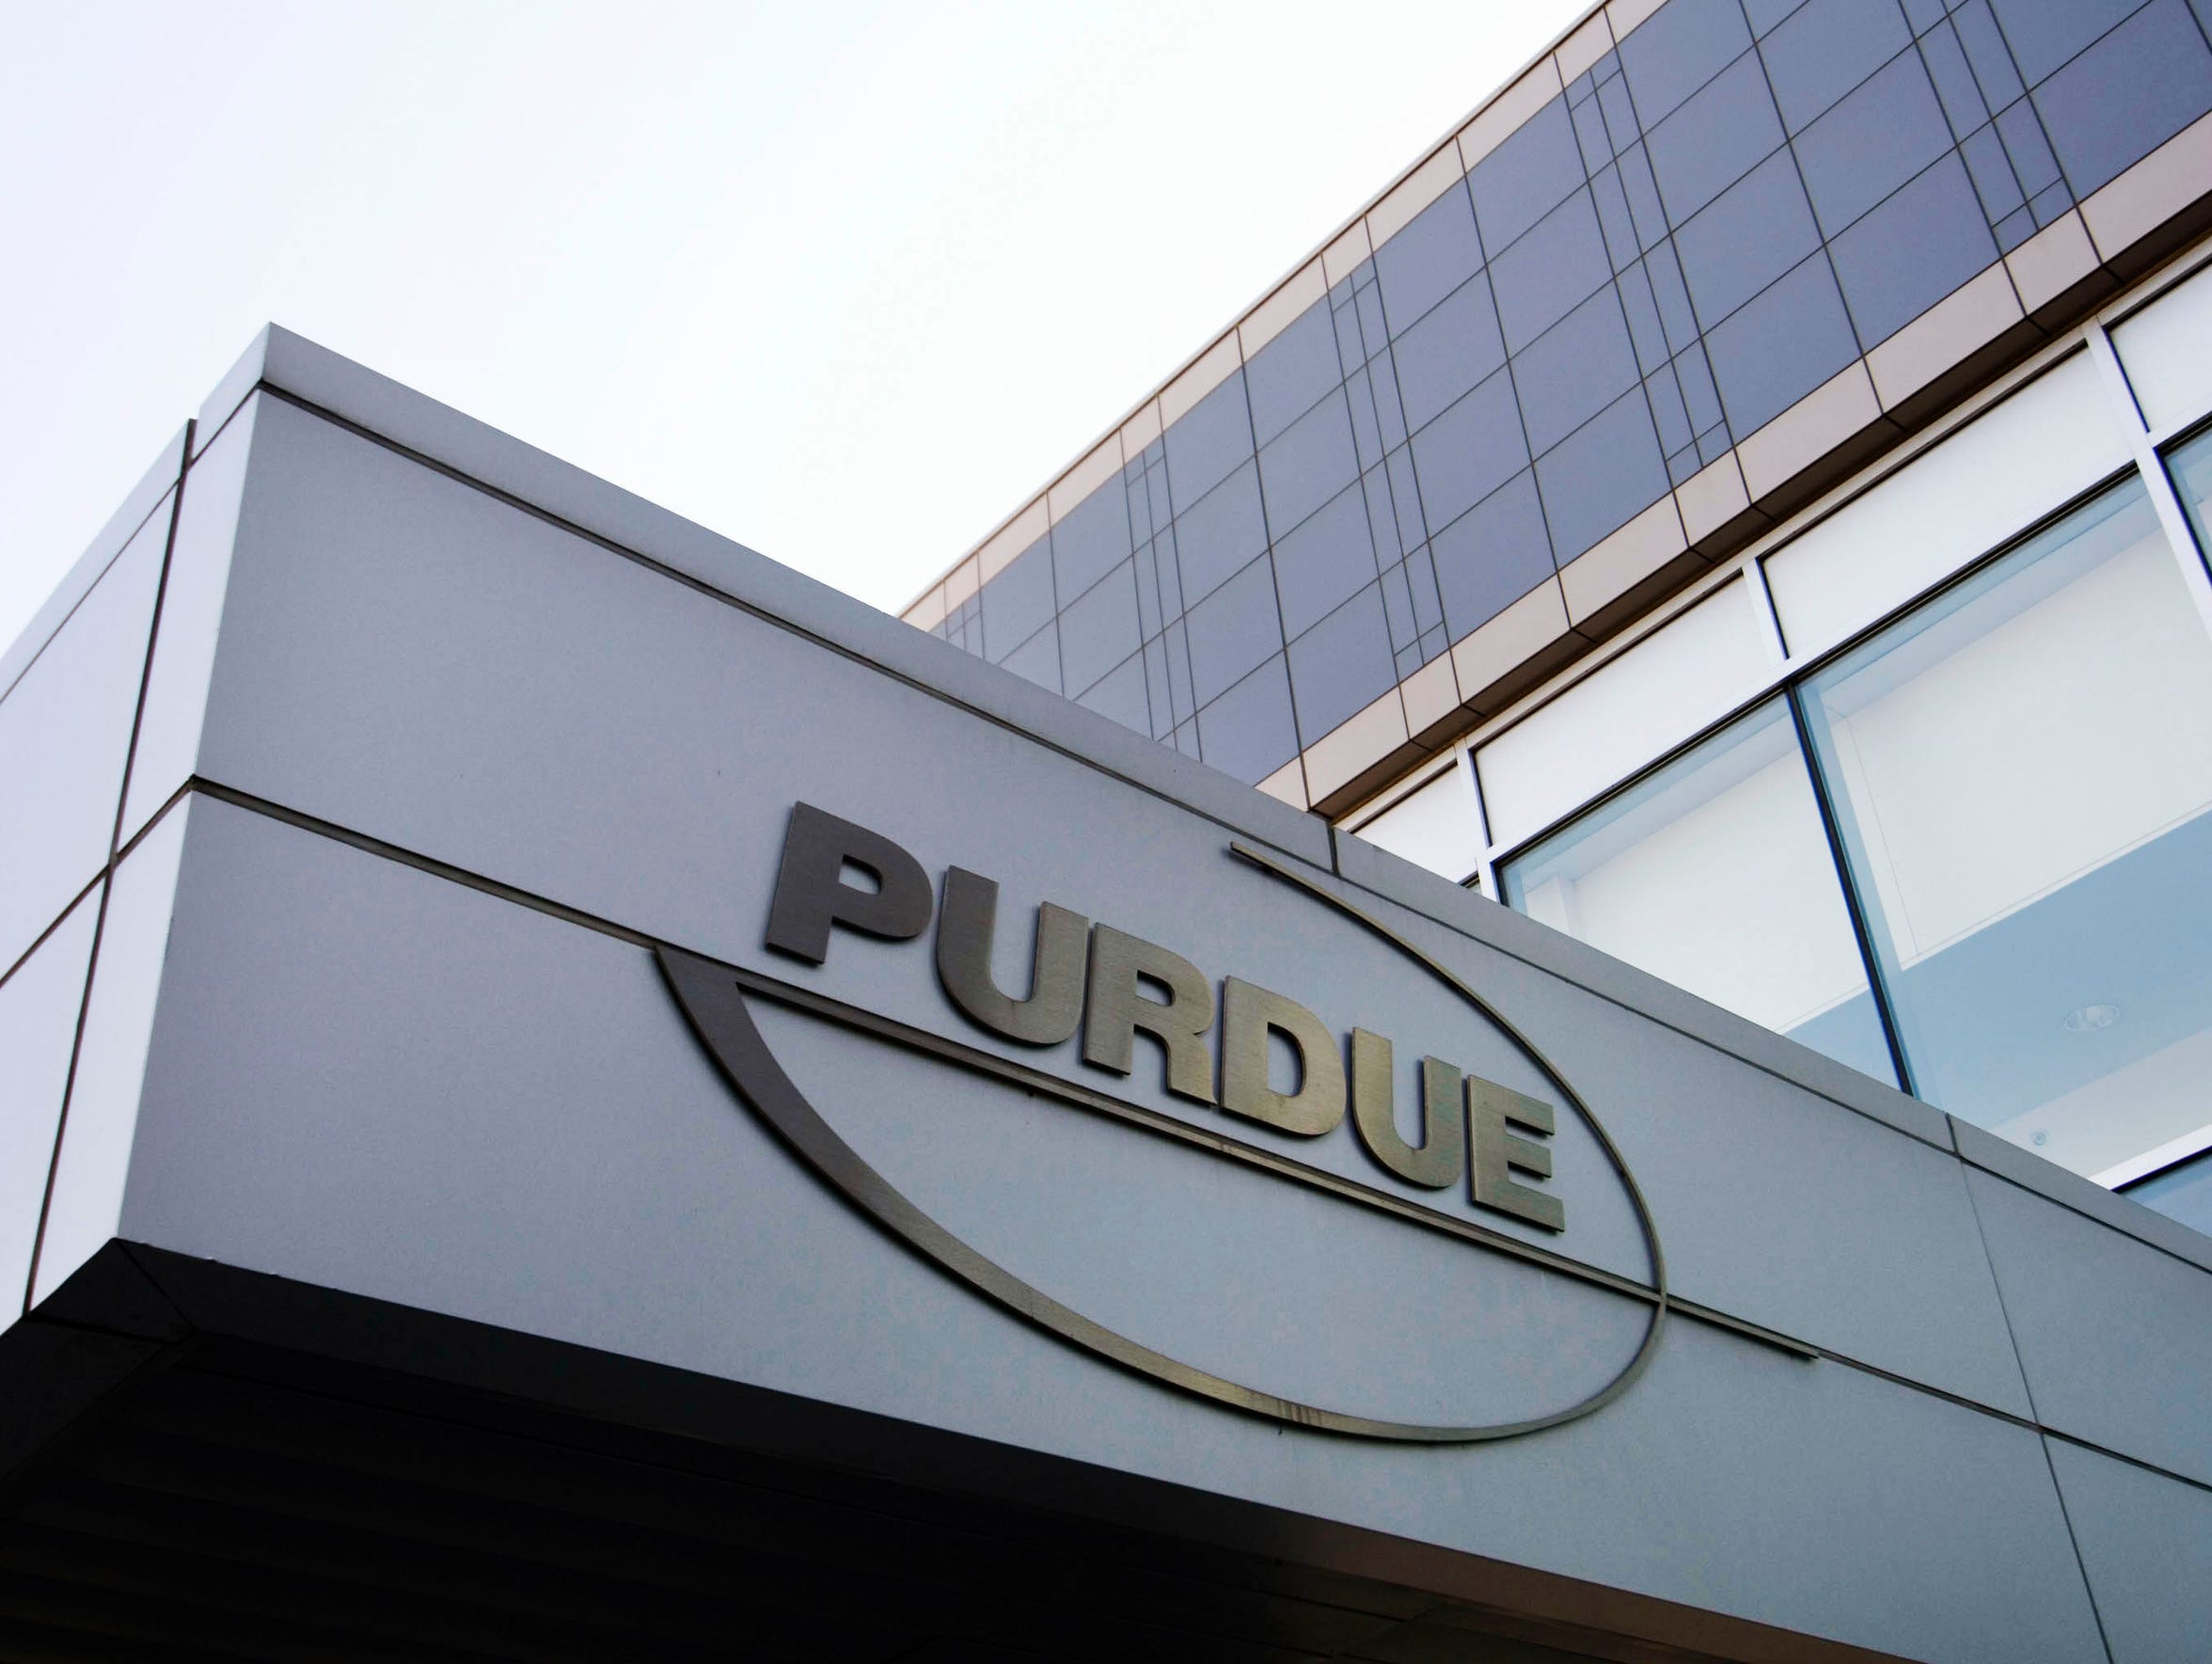 Purdue Pharma, a giant pharmaceutical corporation behind OxyContin and other powerful opioids, has in recent years been sued by 22 states.